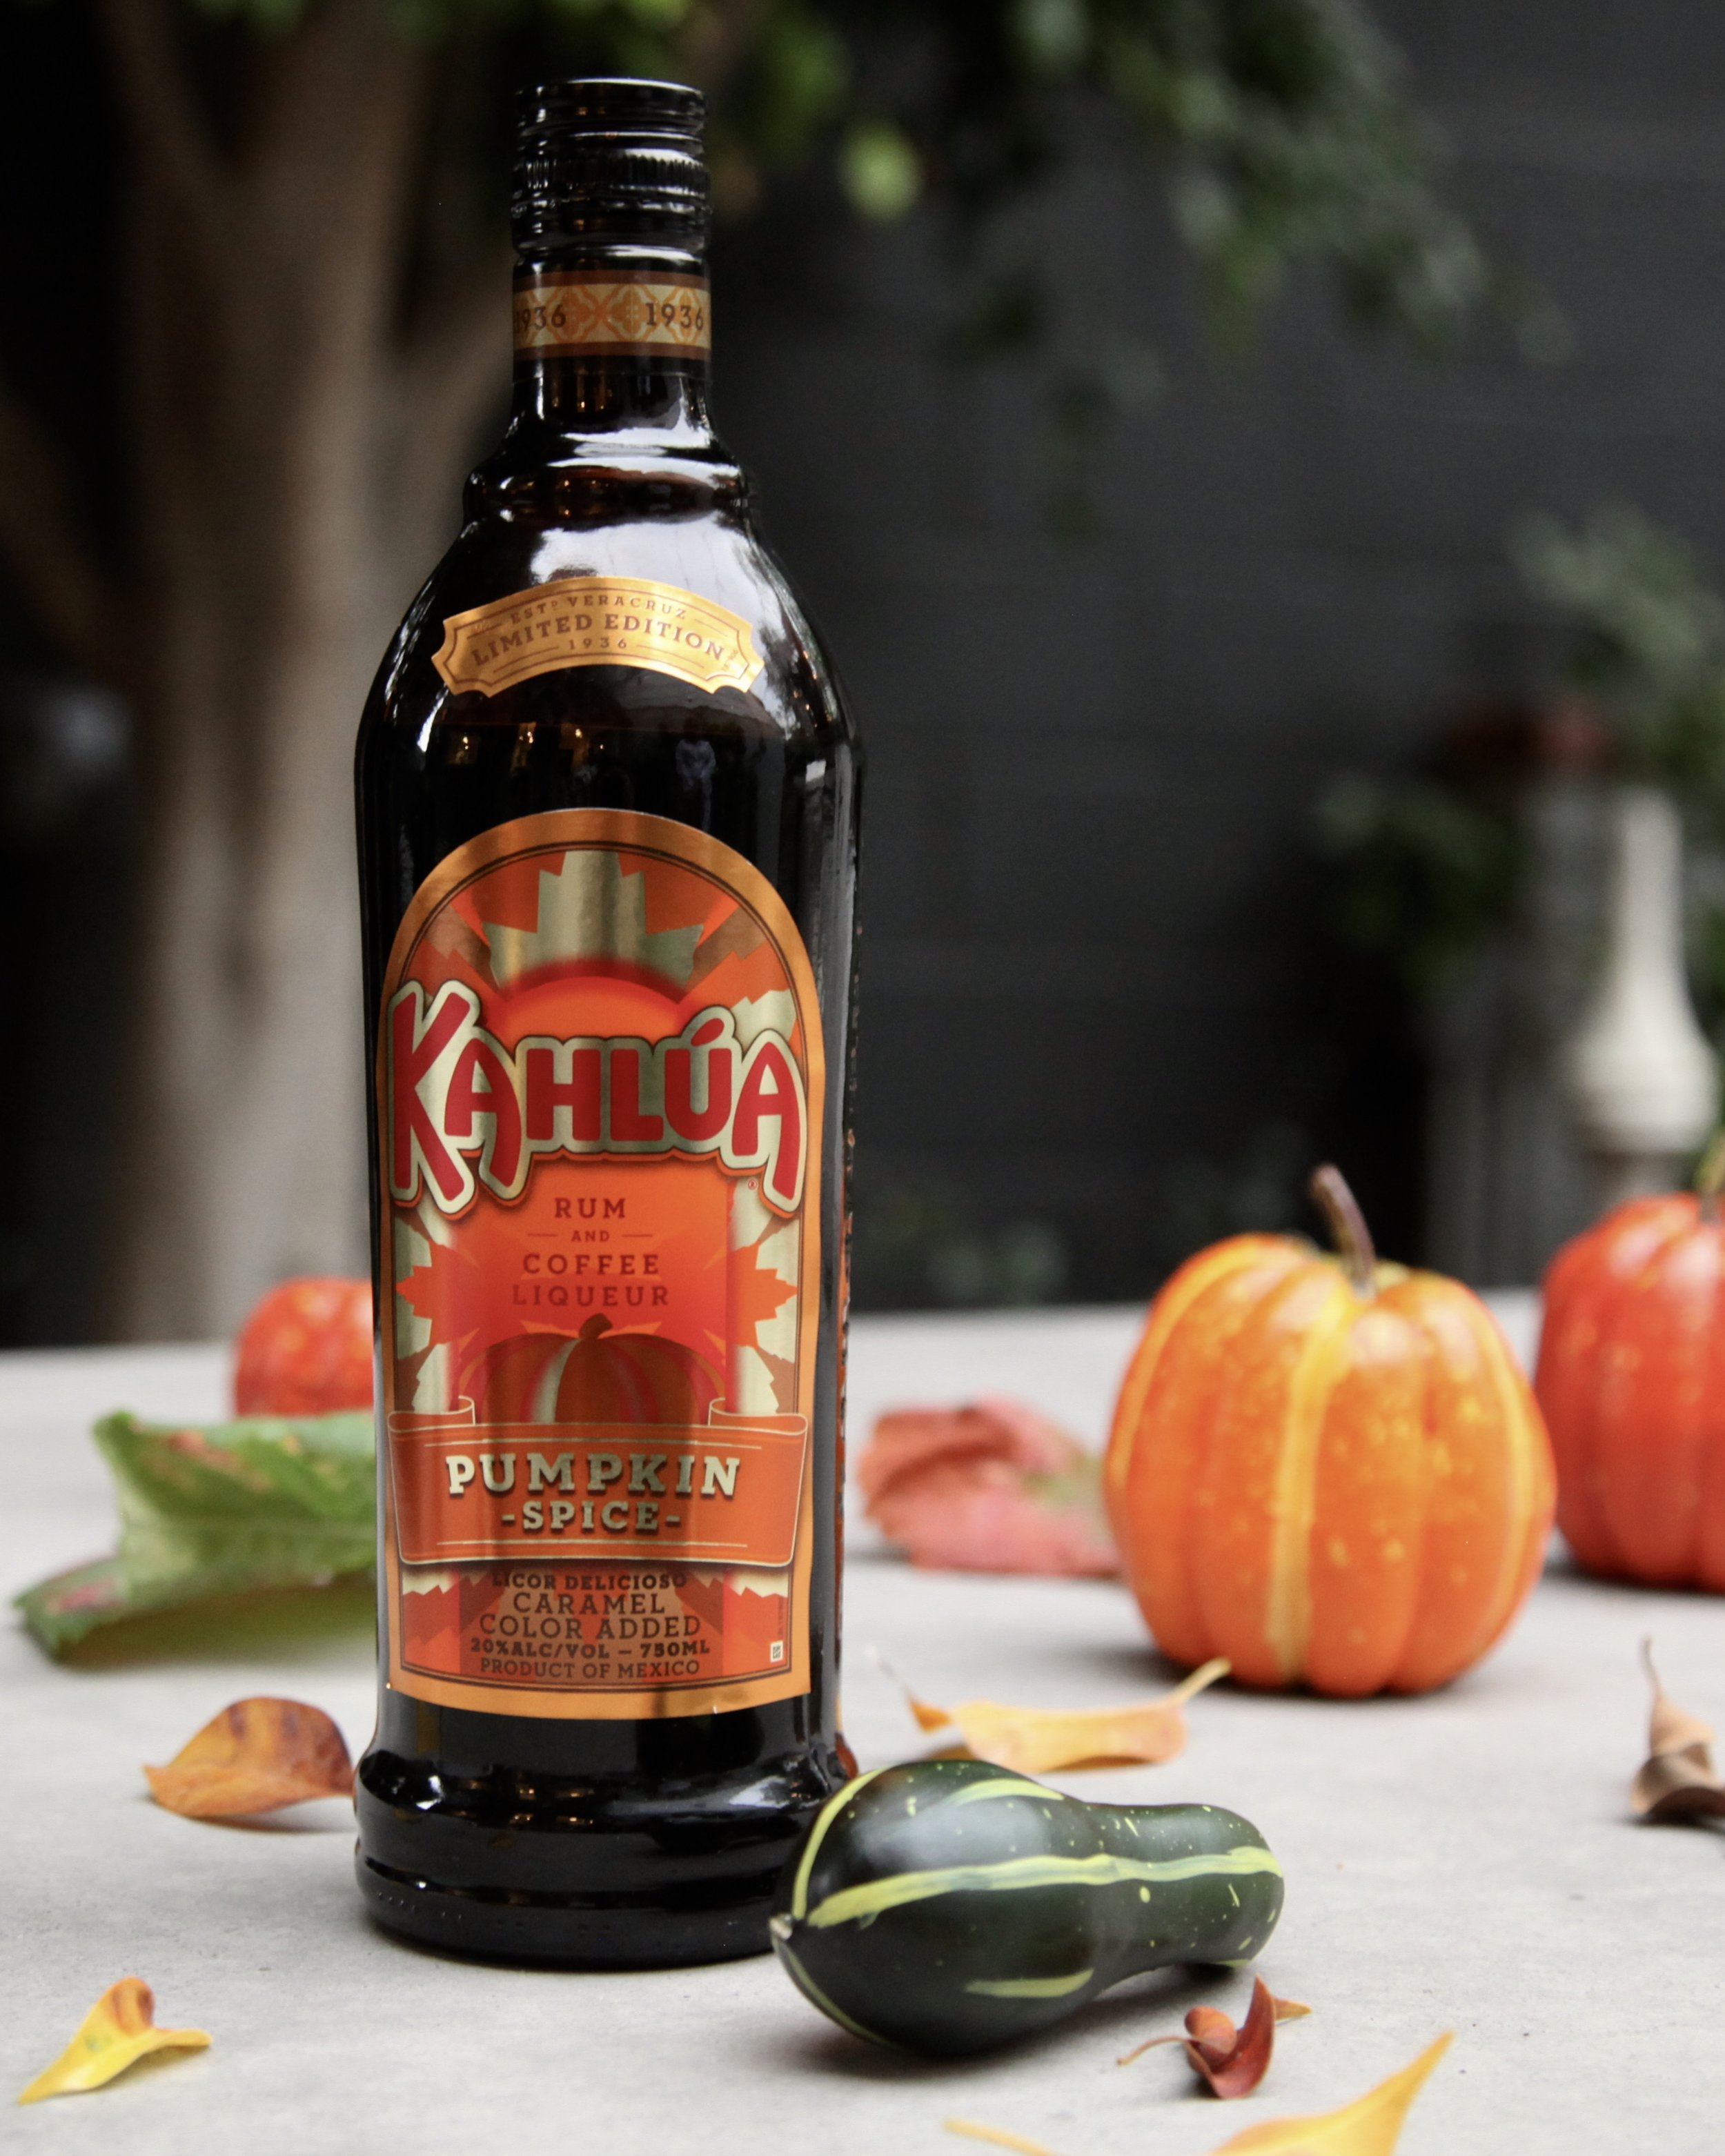 Pumpkin Spice Kahlua  is not hard to find during the holidays.